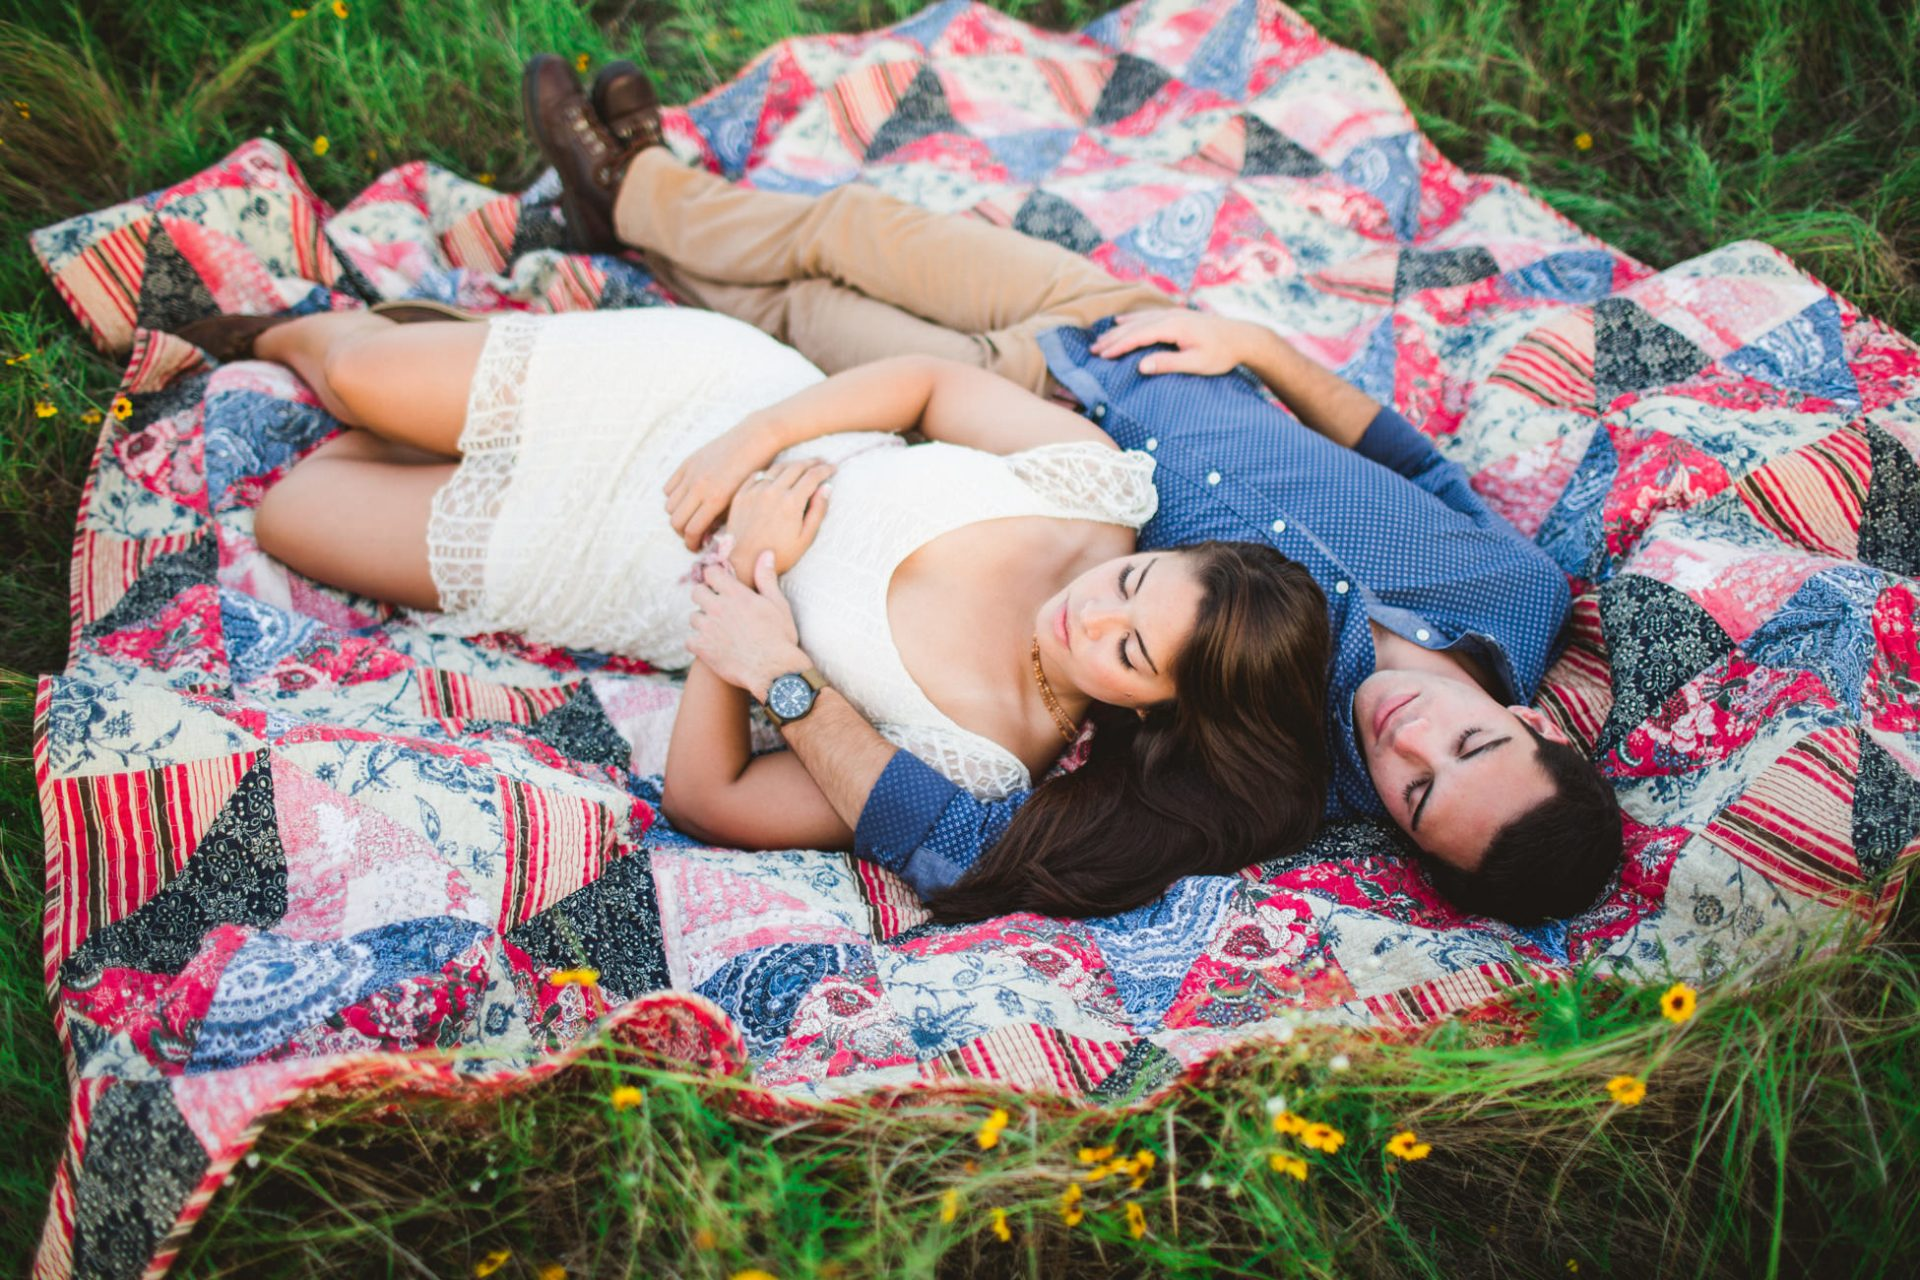 best-top-los-angeles-oklahoma-destination-engagement-photographer-hipster-modern-quirky-editorial-romantic-epic-10-blanket-lay-in-grass